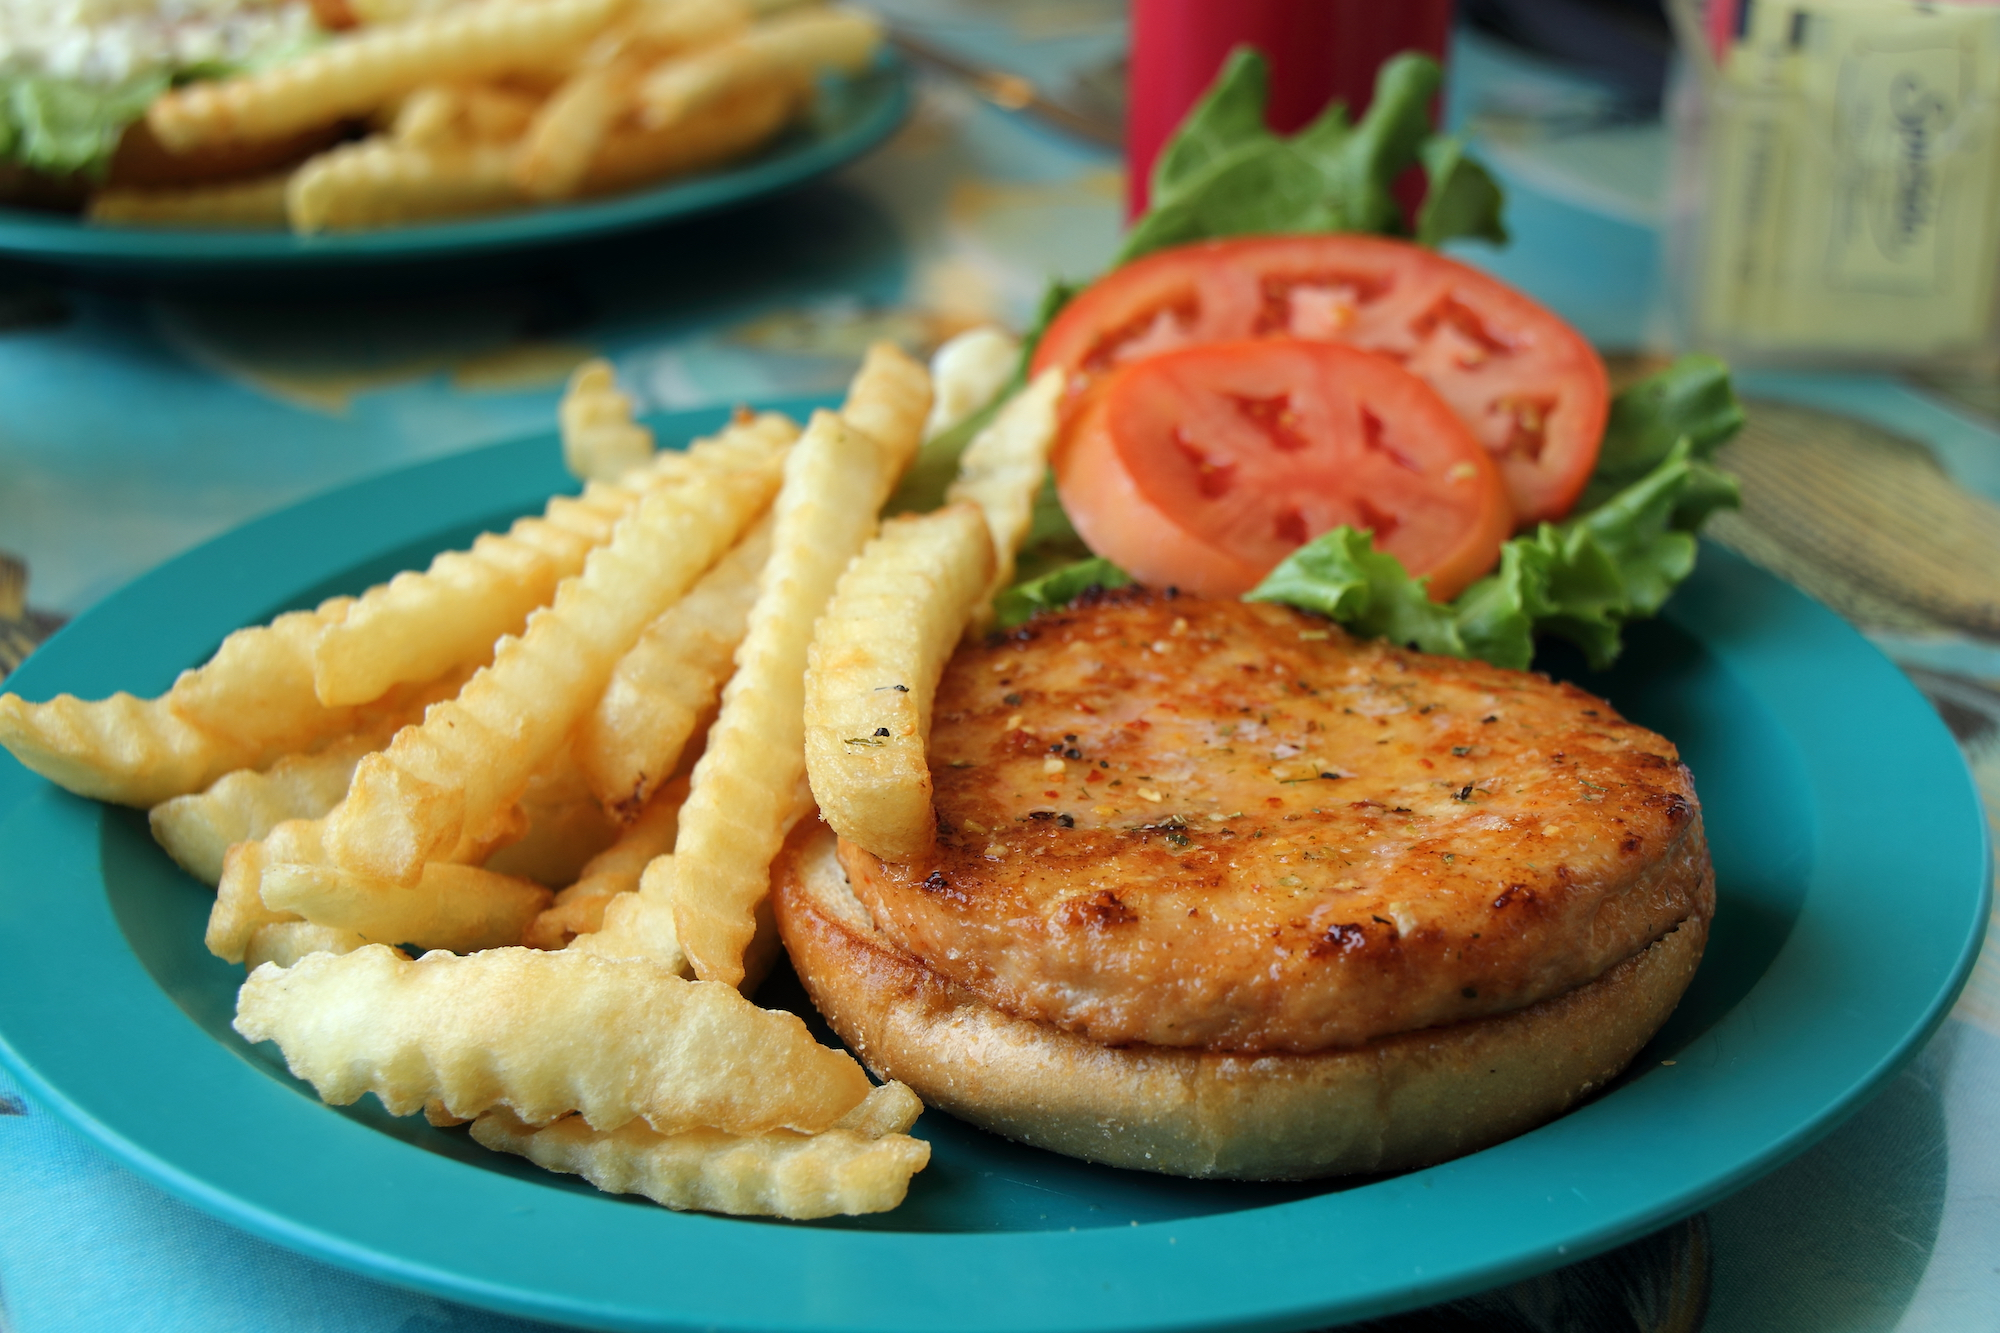 A salmon burger on a plate with lettuce, tomato, and fries